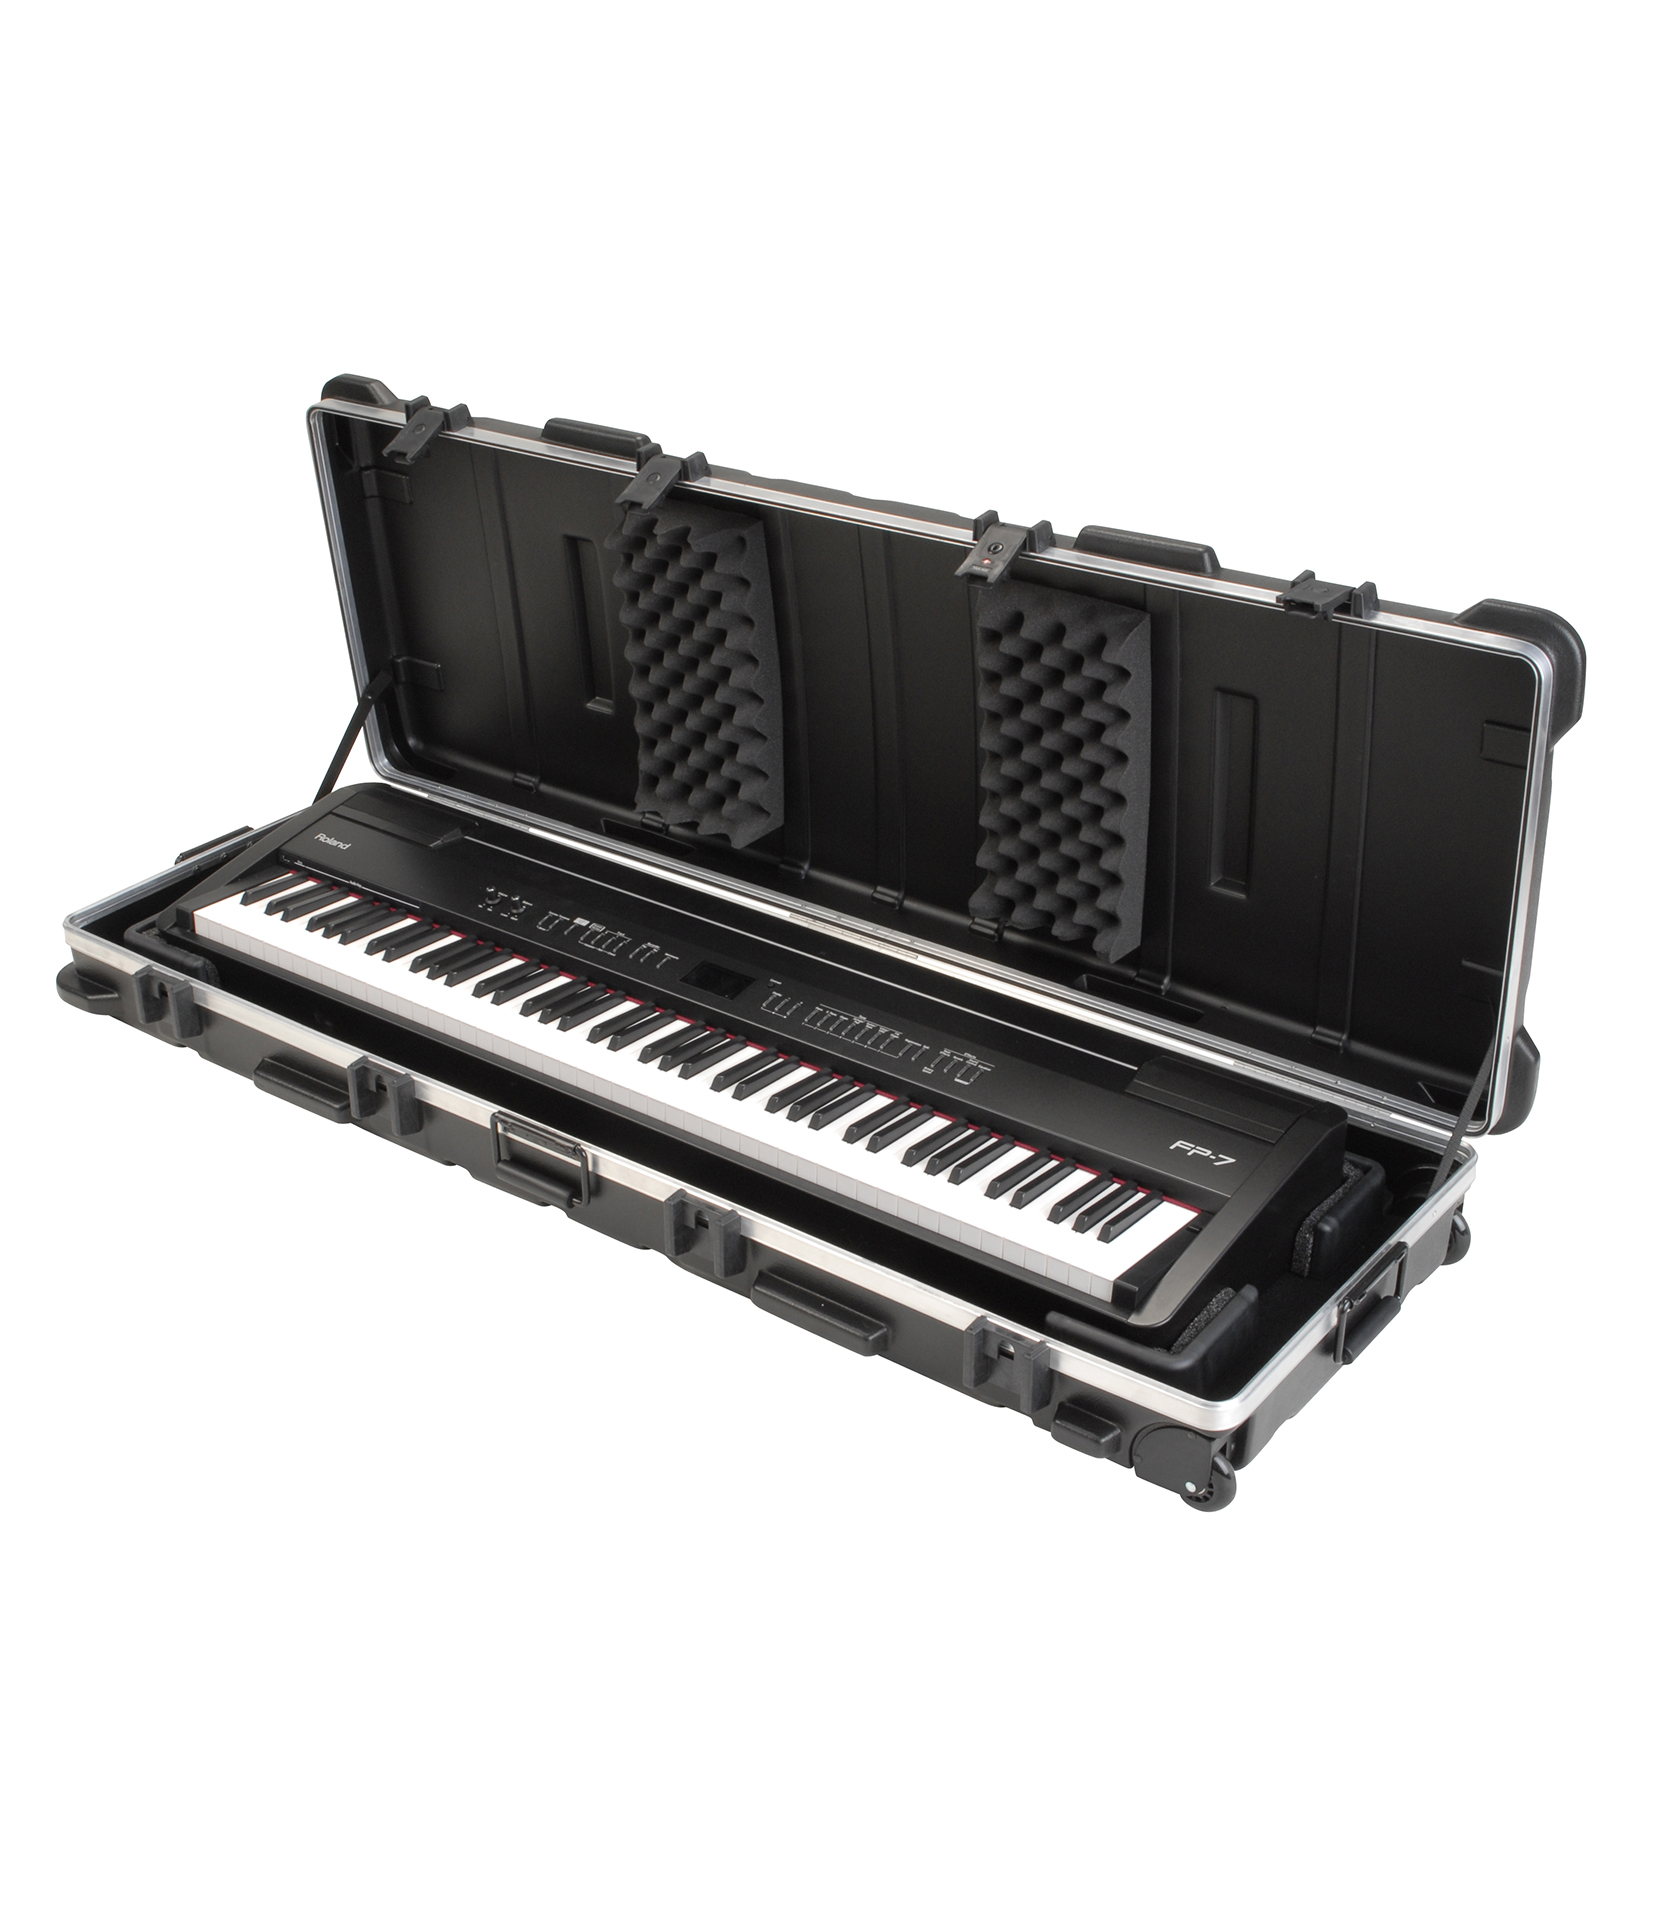 Melody House Musical Instruments Store - 1SKB 5817W ATA 88 Note Slim Line Keyboard Case w W